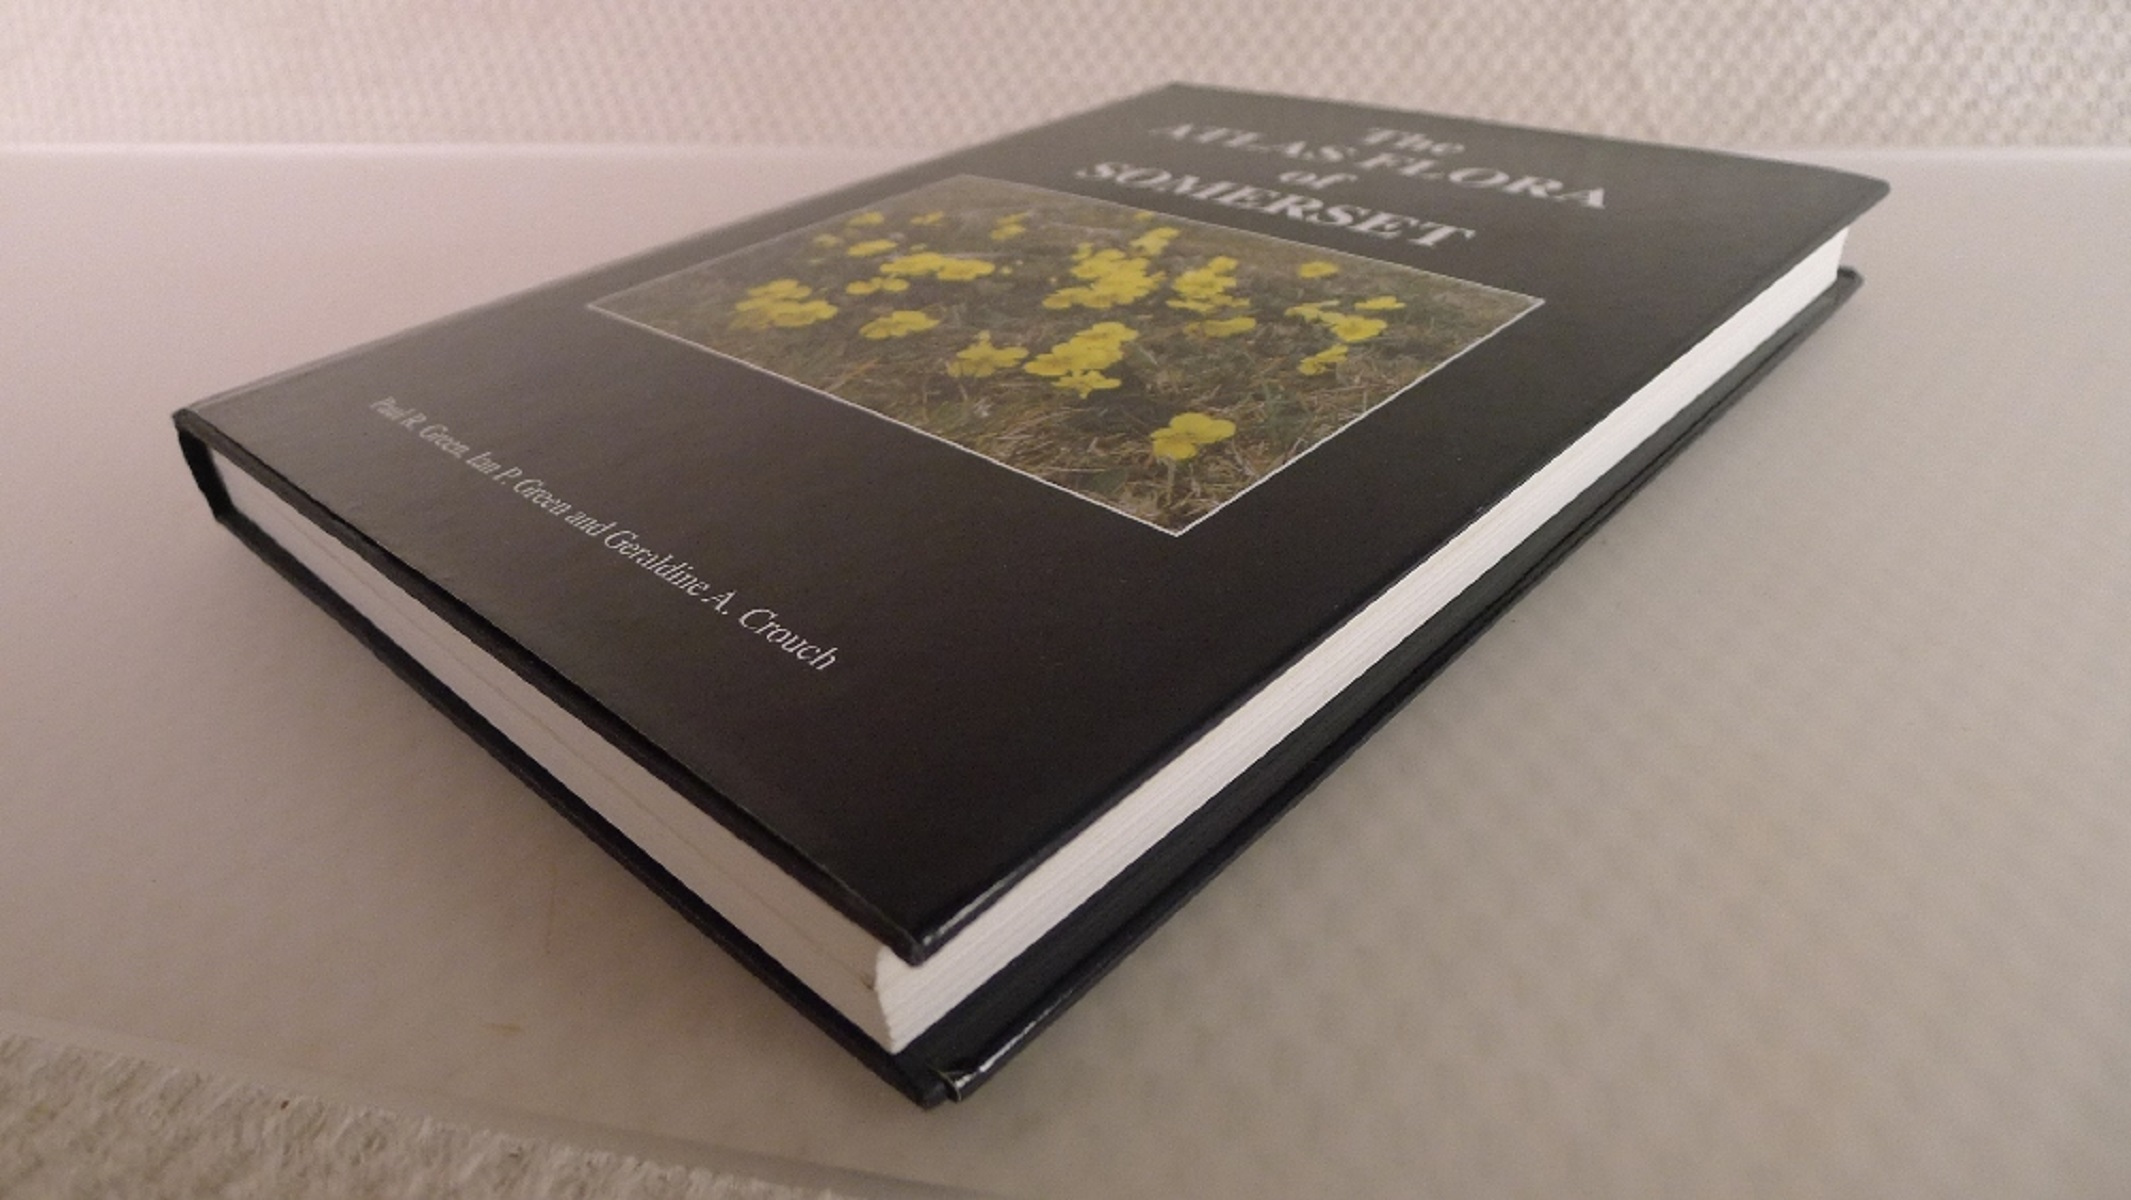 The Atlas Flora of Somerset by Paul R Green, Ian P Green and Geraldine A crouch published - Image 3 of 6